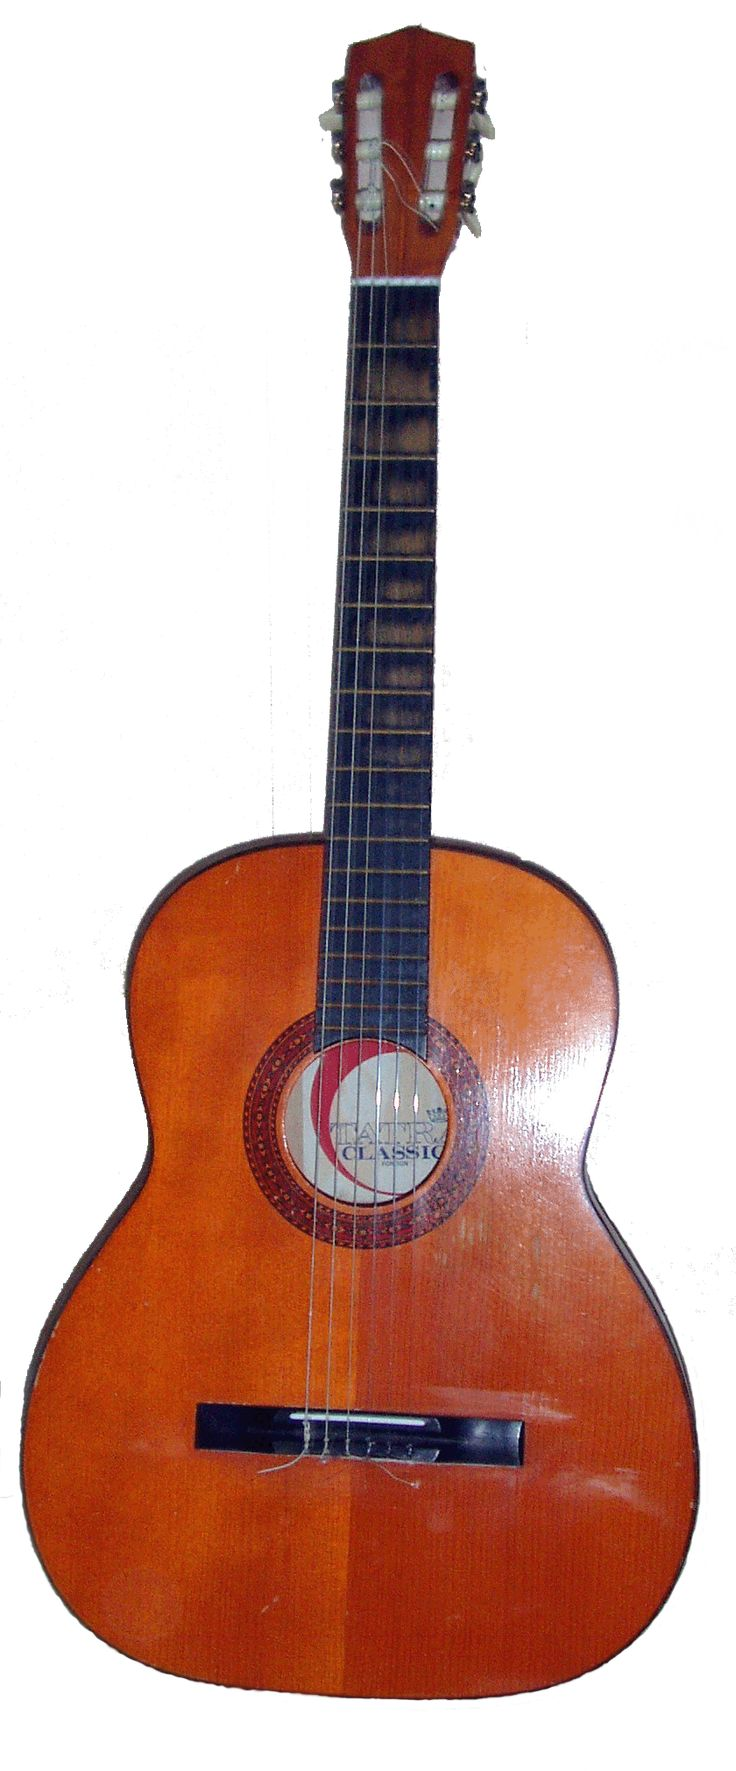 Spanish Acoustic Classical Guitar Learn To Play Authentic Guitar For Any Style Of Music - Beginner Thru Professional at: http://www.ChordMelodyGuitarMusic.com